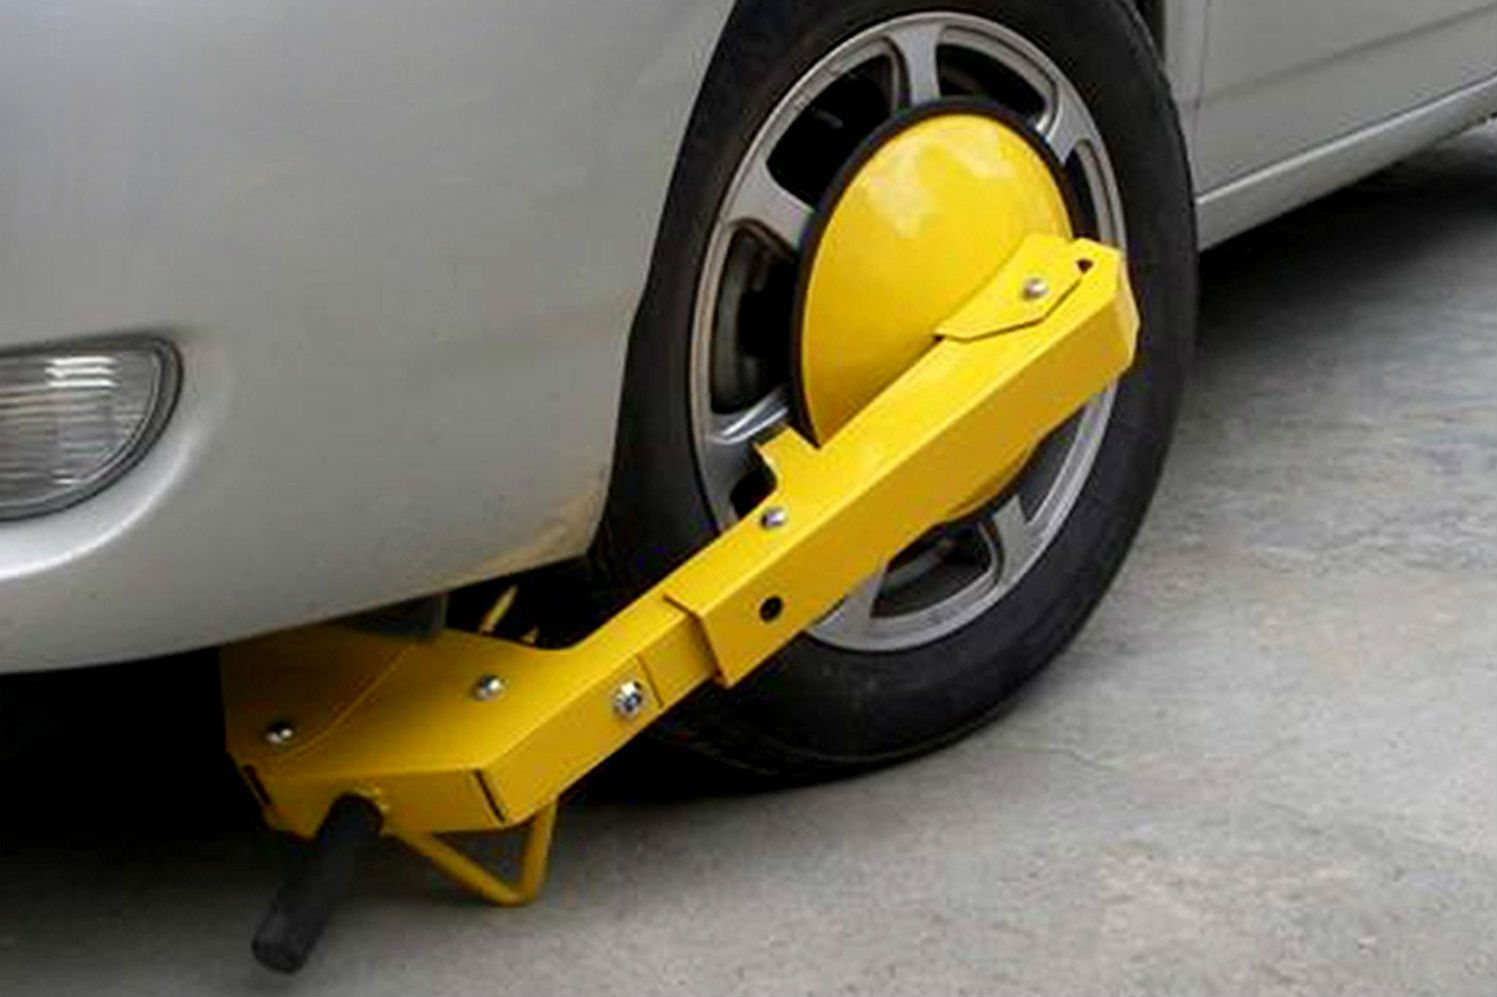 The Best Anti-Theft Devices for Cars | Digital Trends